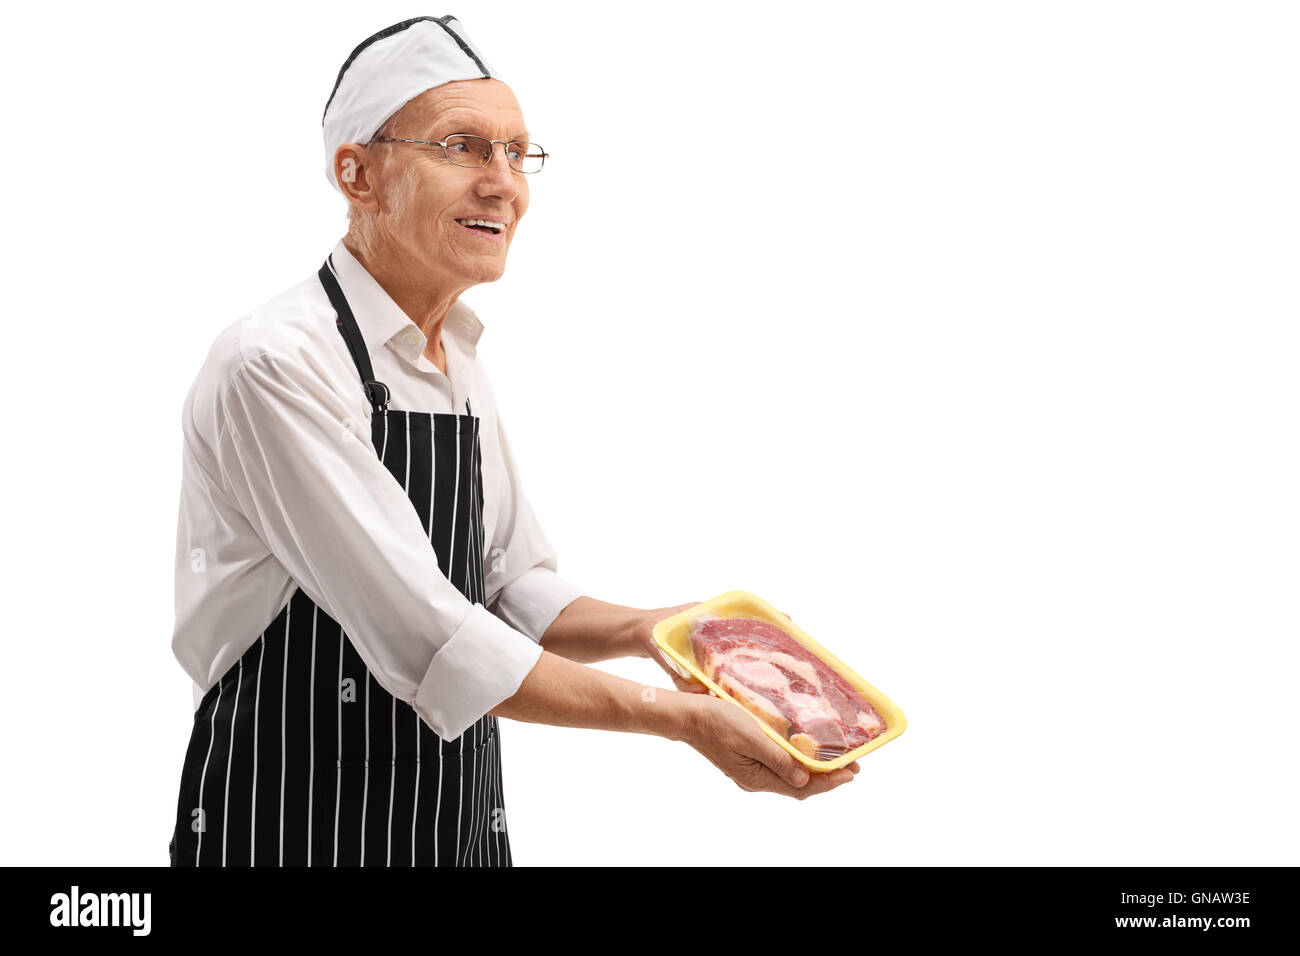 Elderly butcher showing packed meat isolated on white background - Stock Image